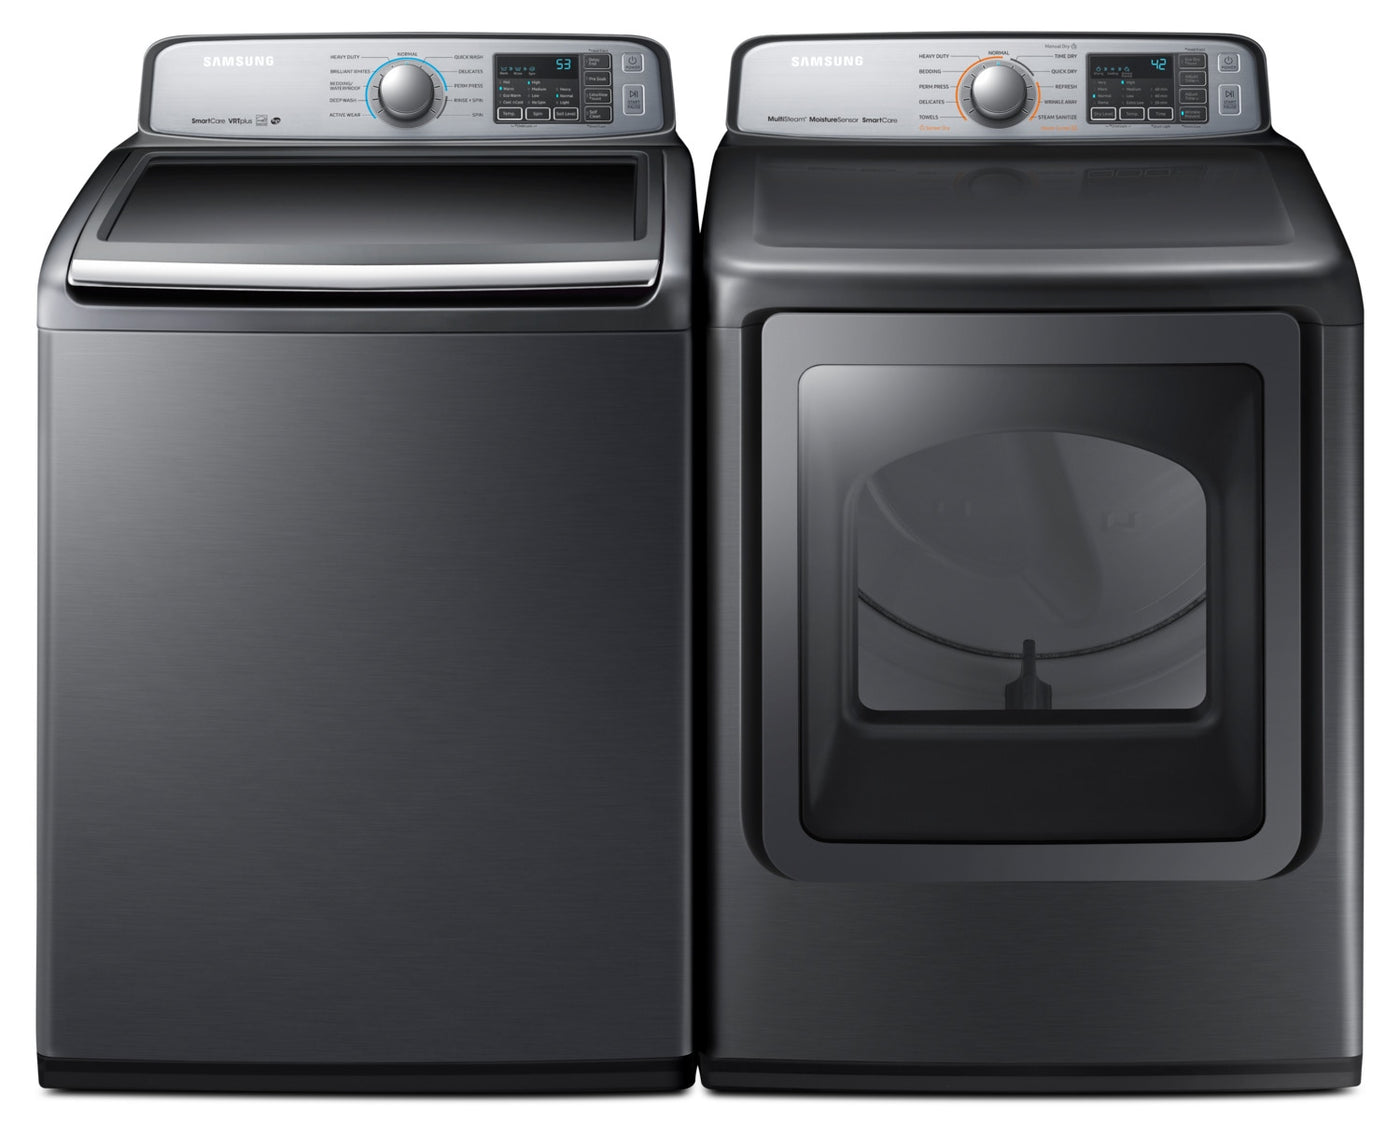 Samsung 5 8 Cu  Ft  Top-Load Washer and 7 4 Cu  Ft  Multi-Steam™ Electric  Dryer